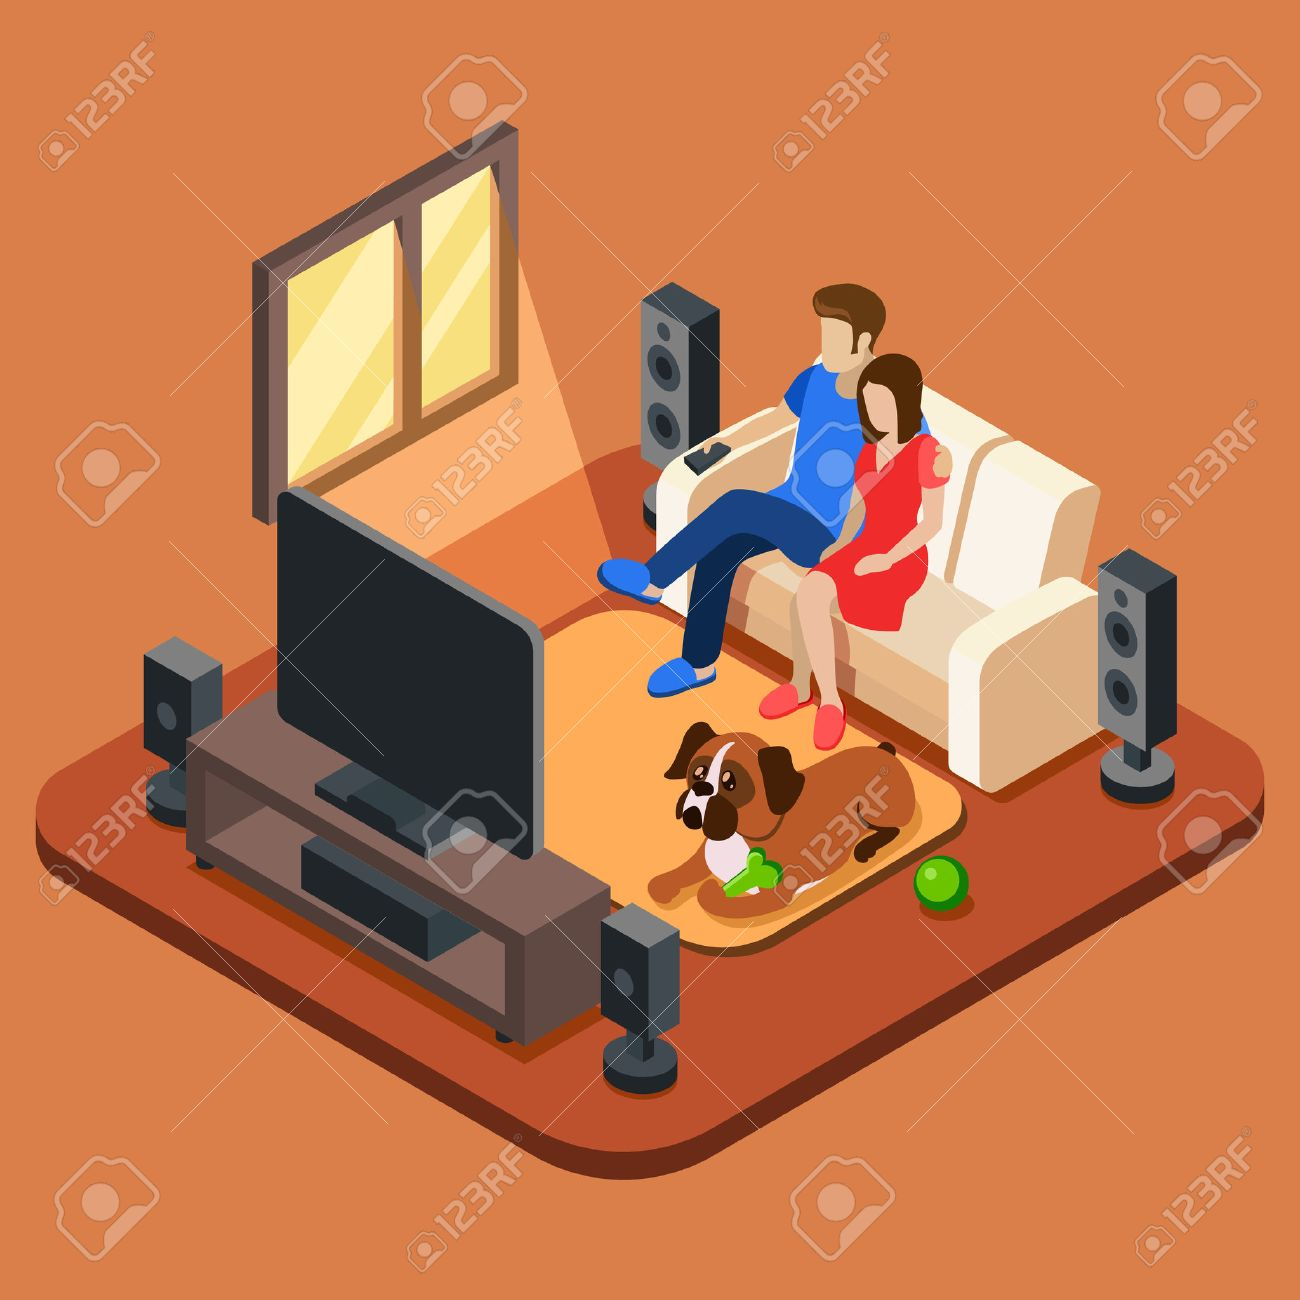 Living Room With Tv And People family in the living room watching tv. 3d isometric people concept